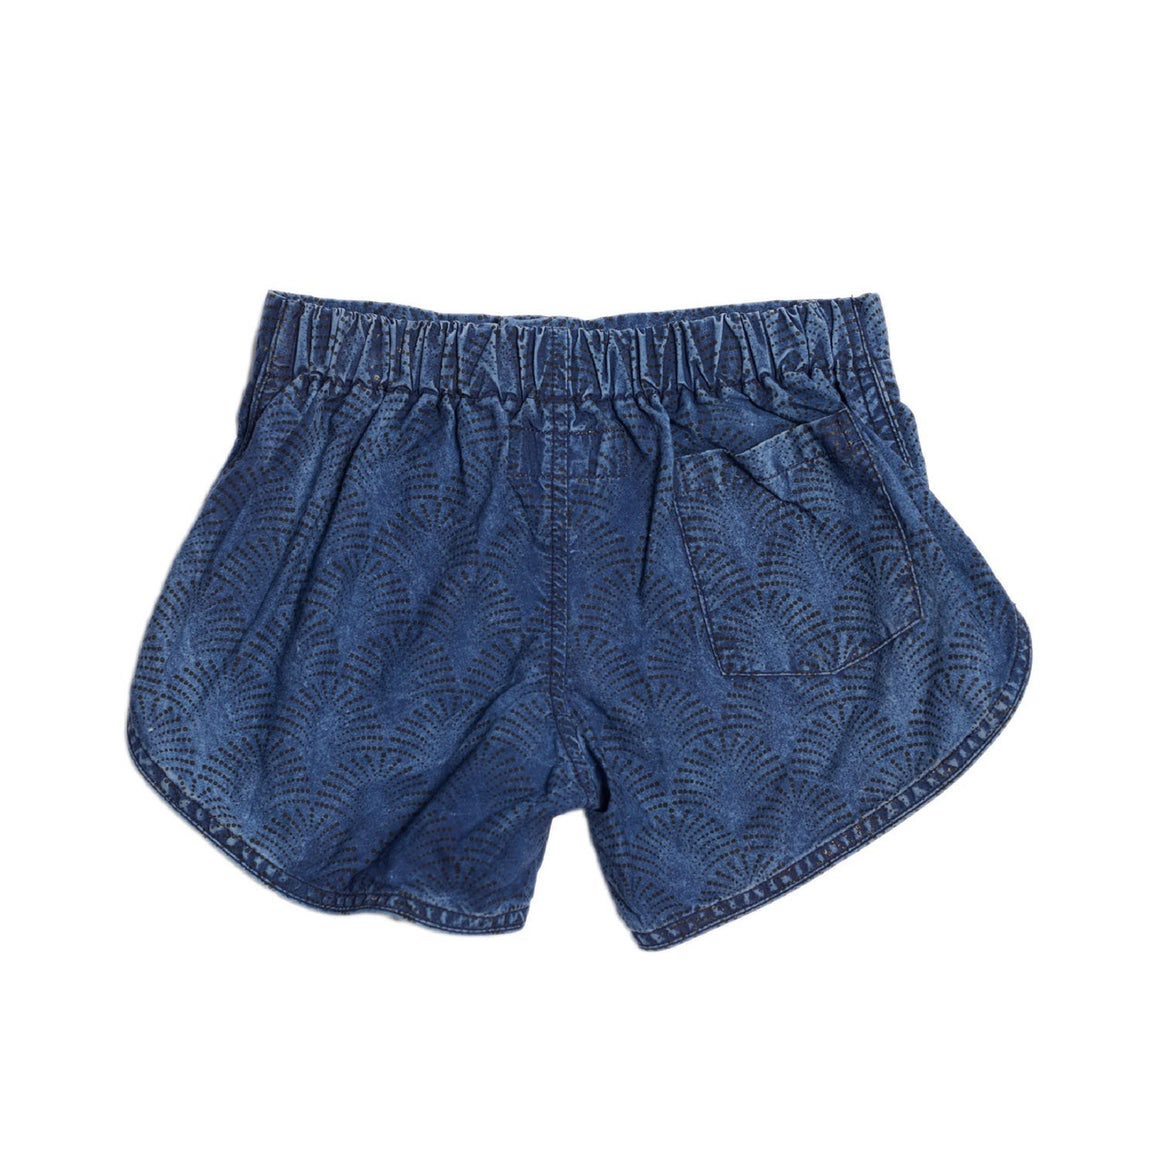 Children of The Tribe Royale Boys Shorts